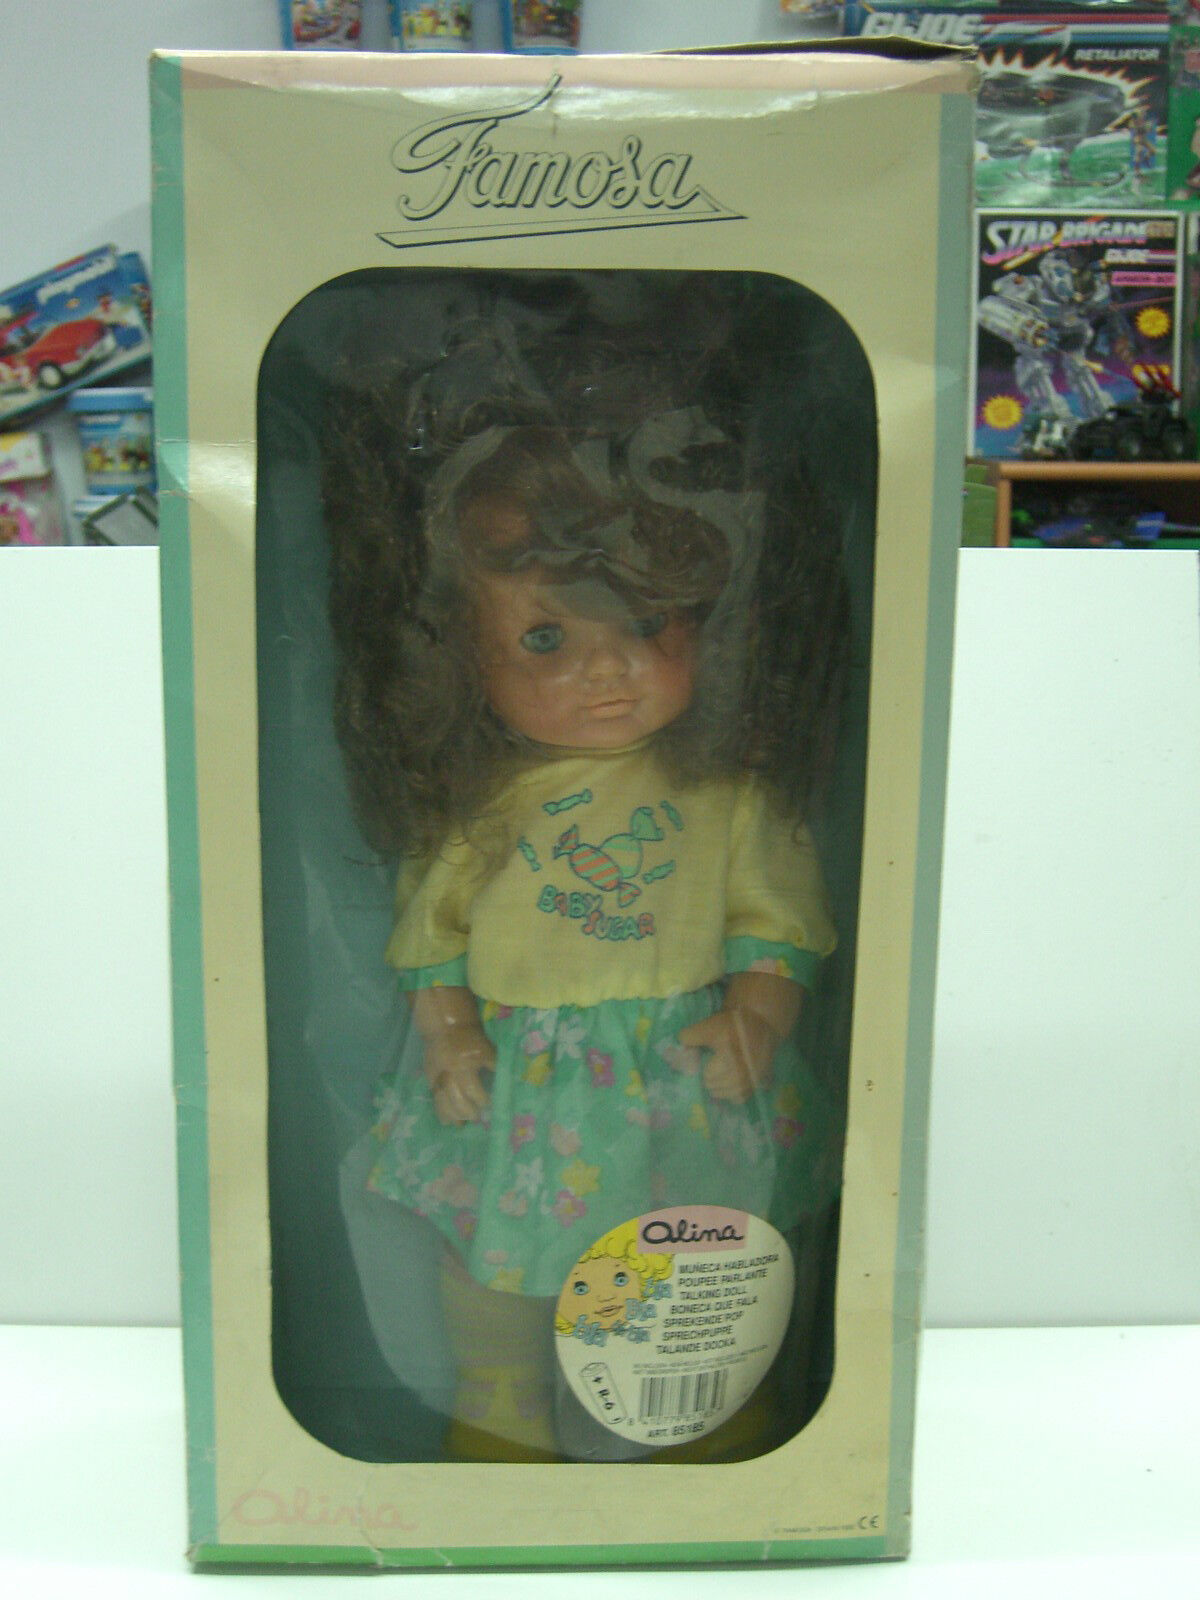 1990 VINTAGE FAMOSA TALKING DOLL OLINA SPAIN 85185 MIB